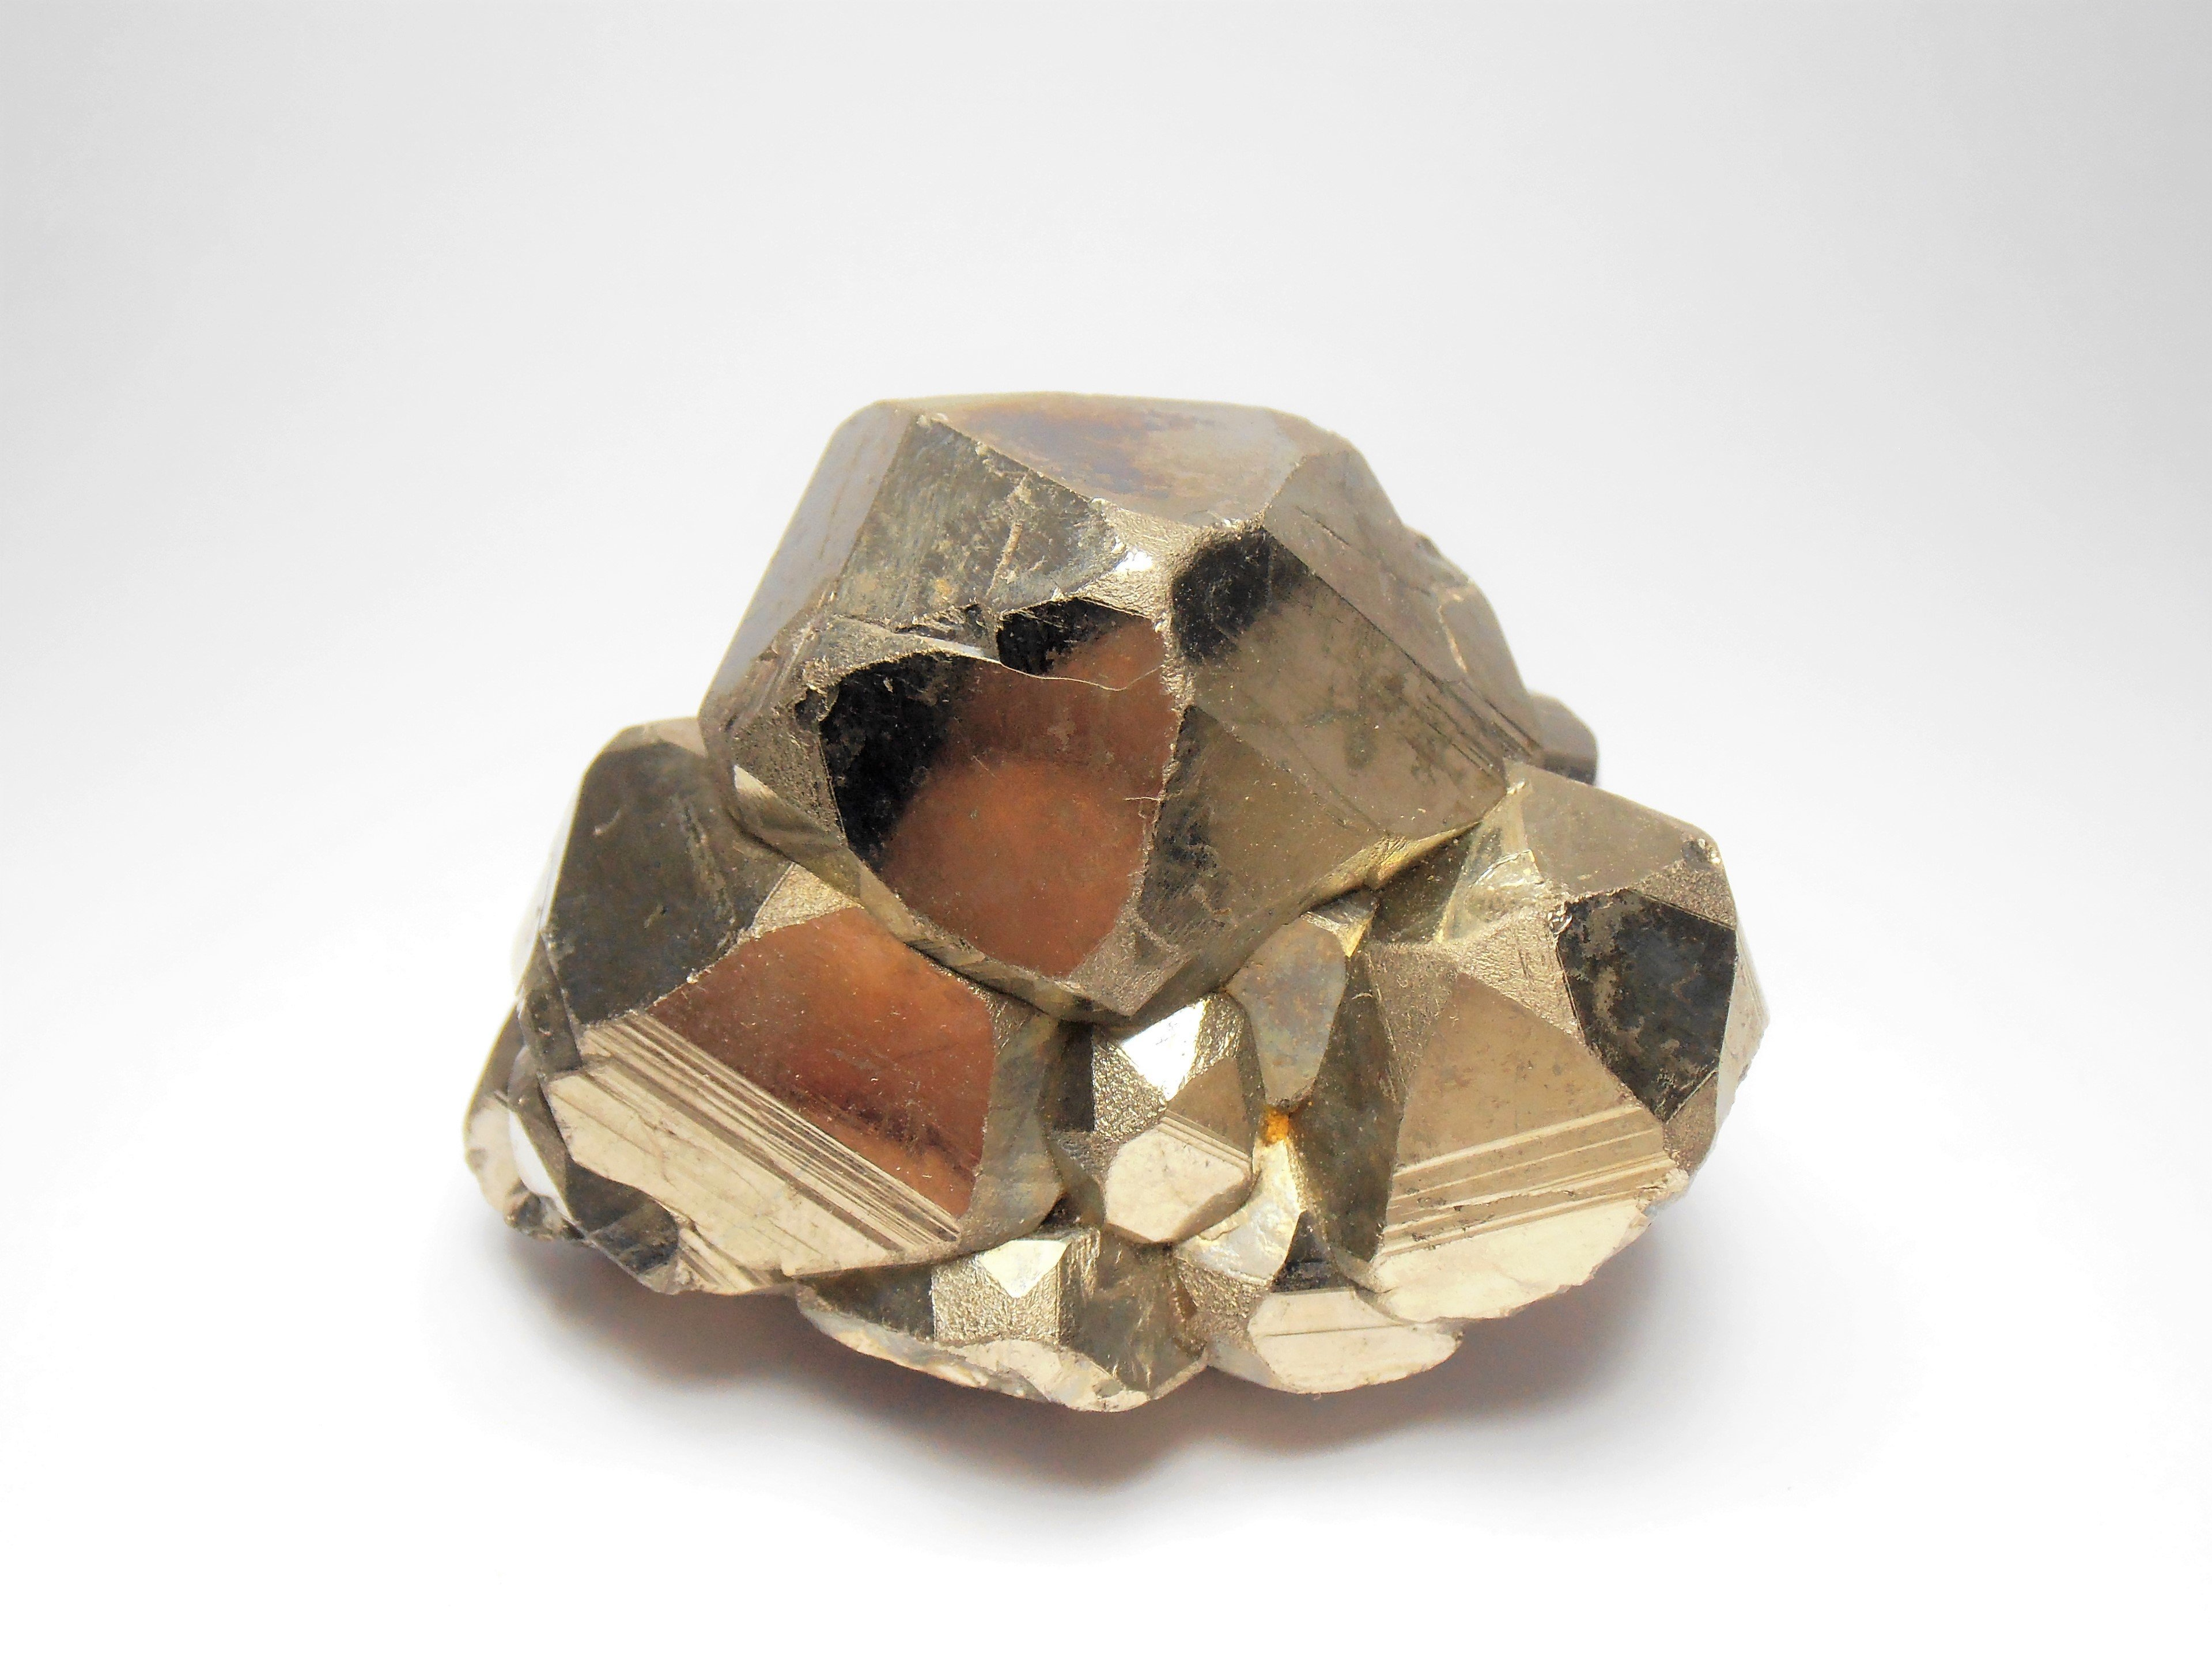 Pyrites with Modified Habits from the Huanzala Mine